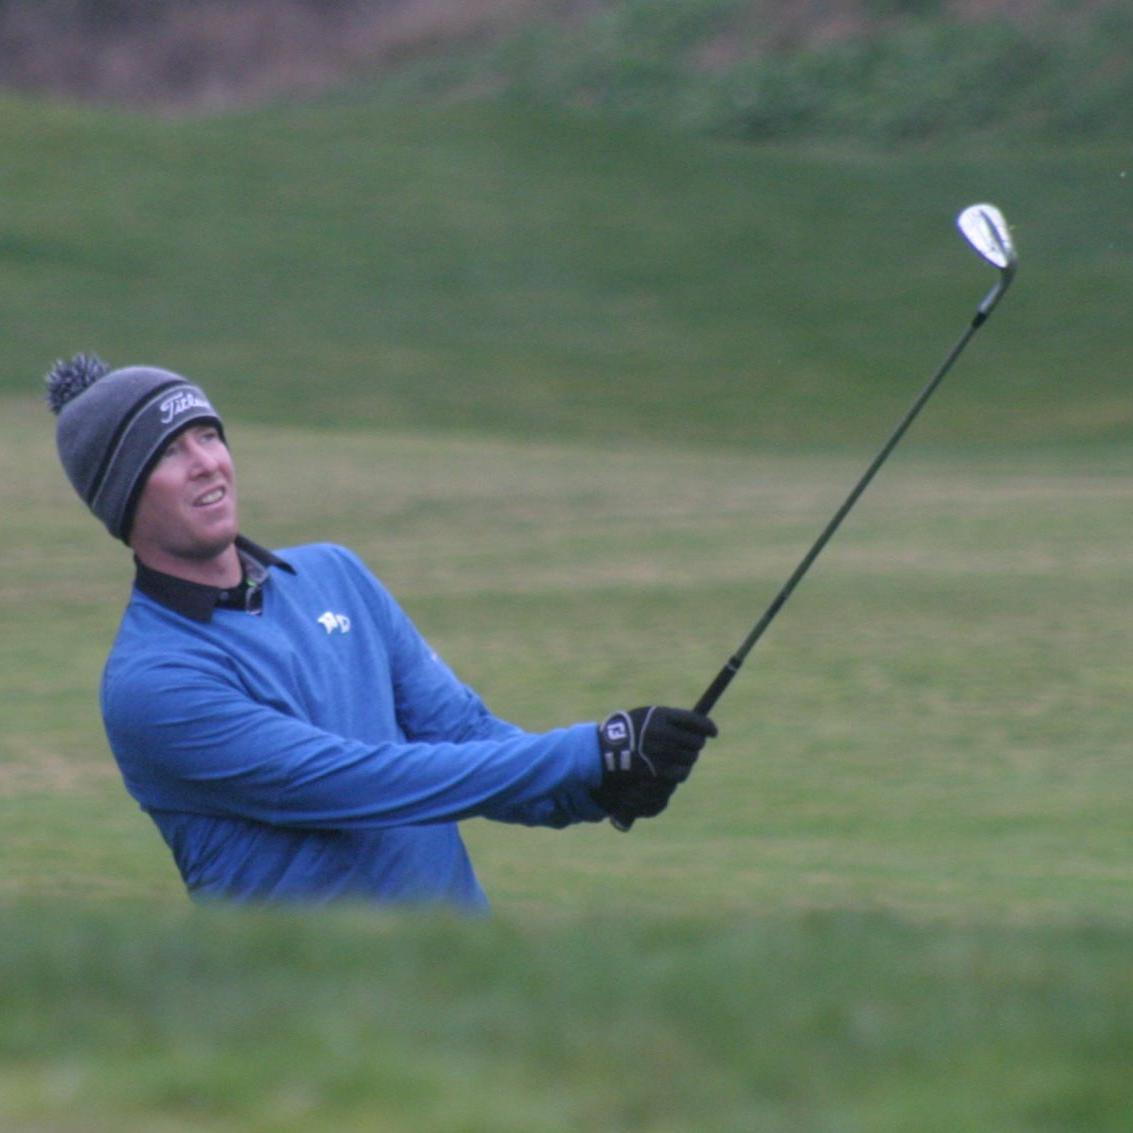 Green Bay's Ricky Hearden III birdies final hole to advance to open qualifying for PGA Tour's Farmers Insurance Open